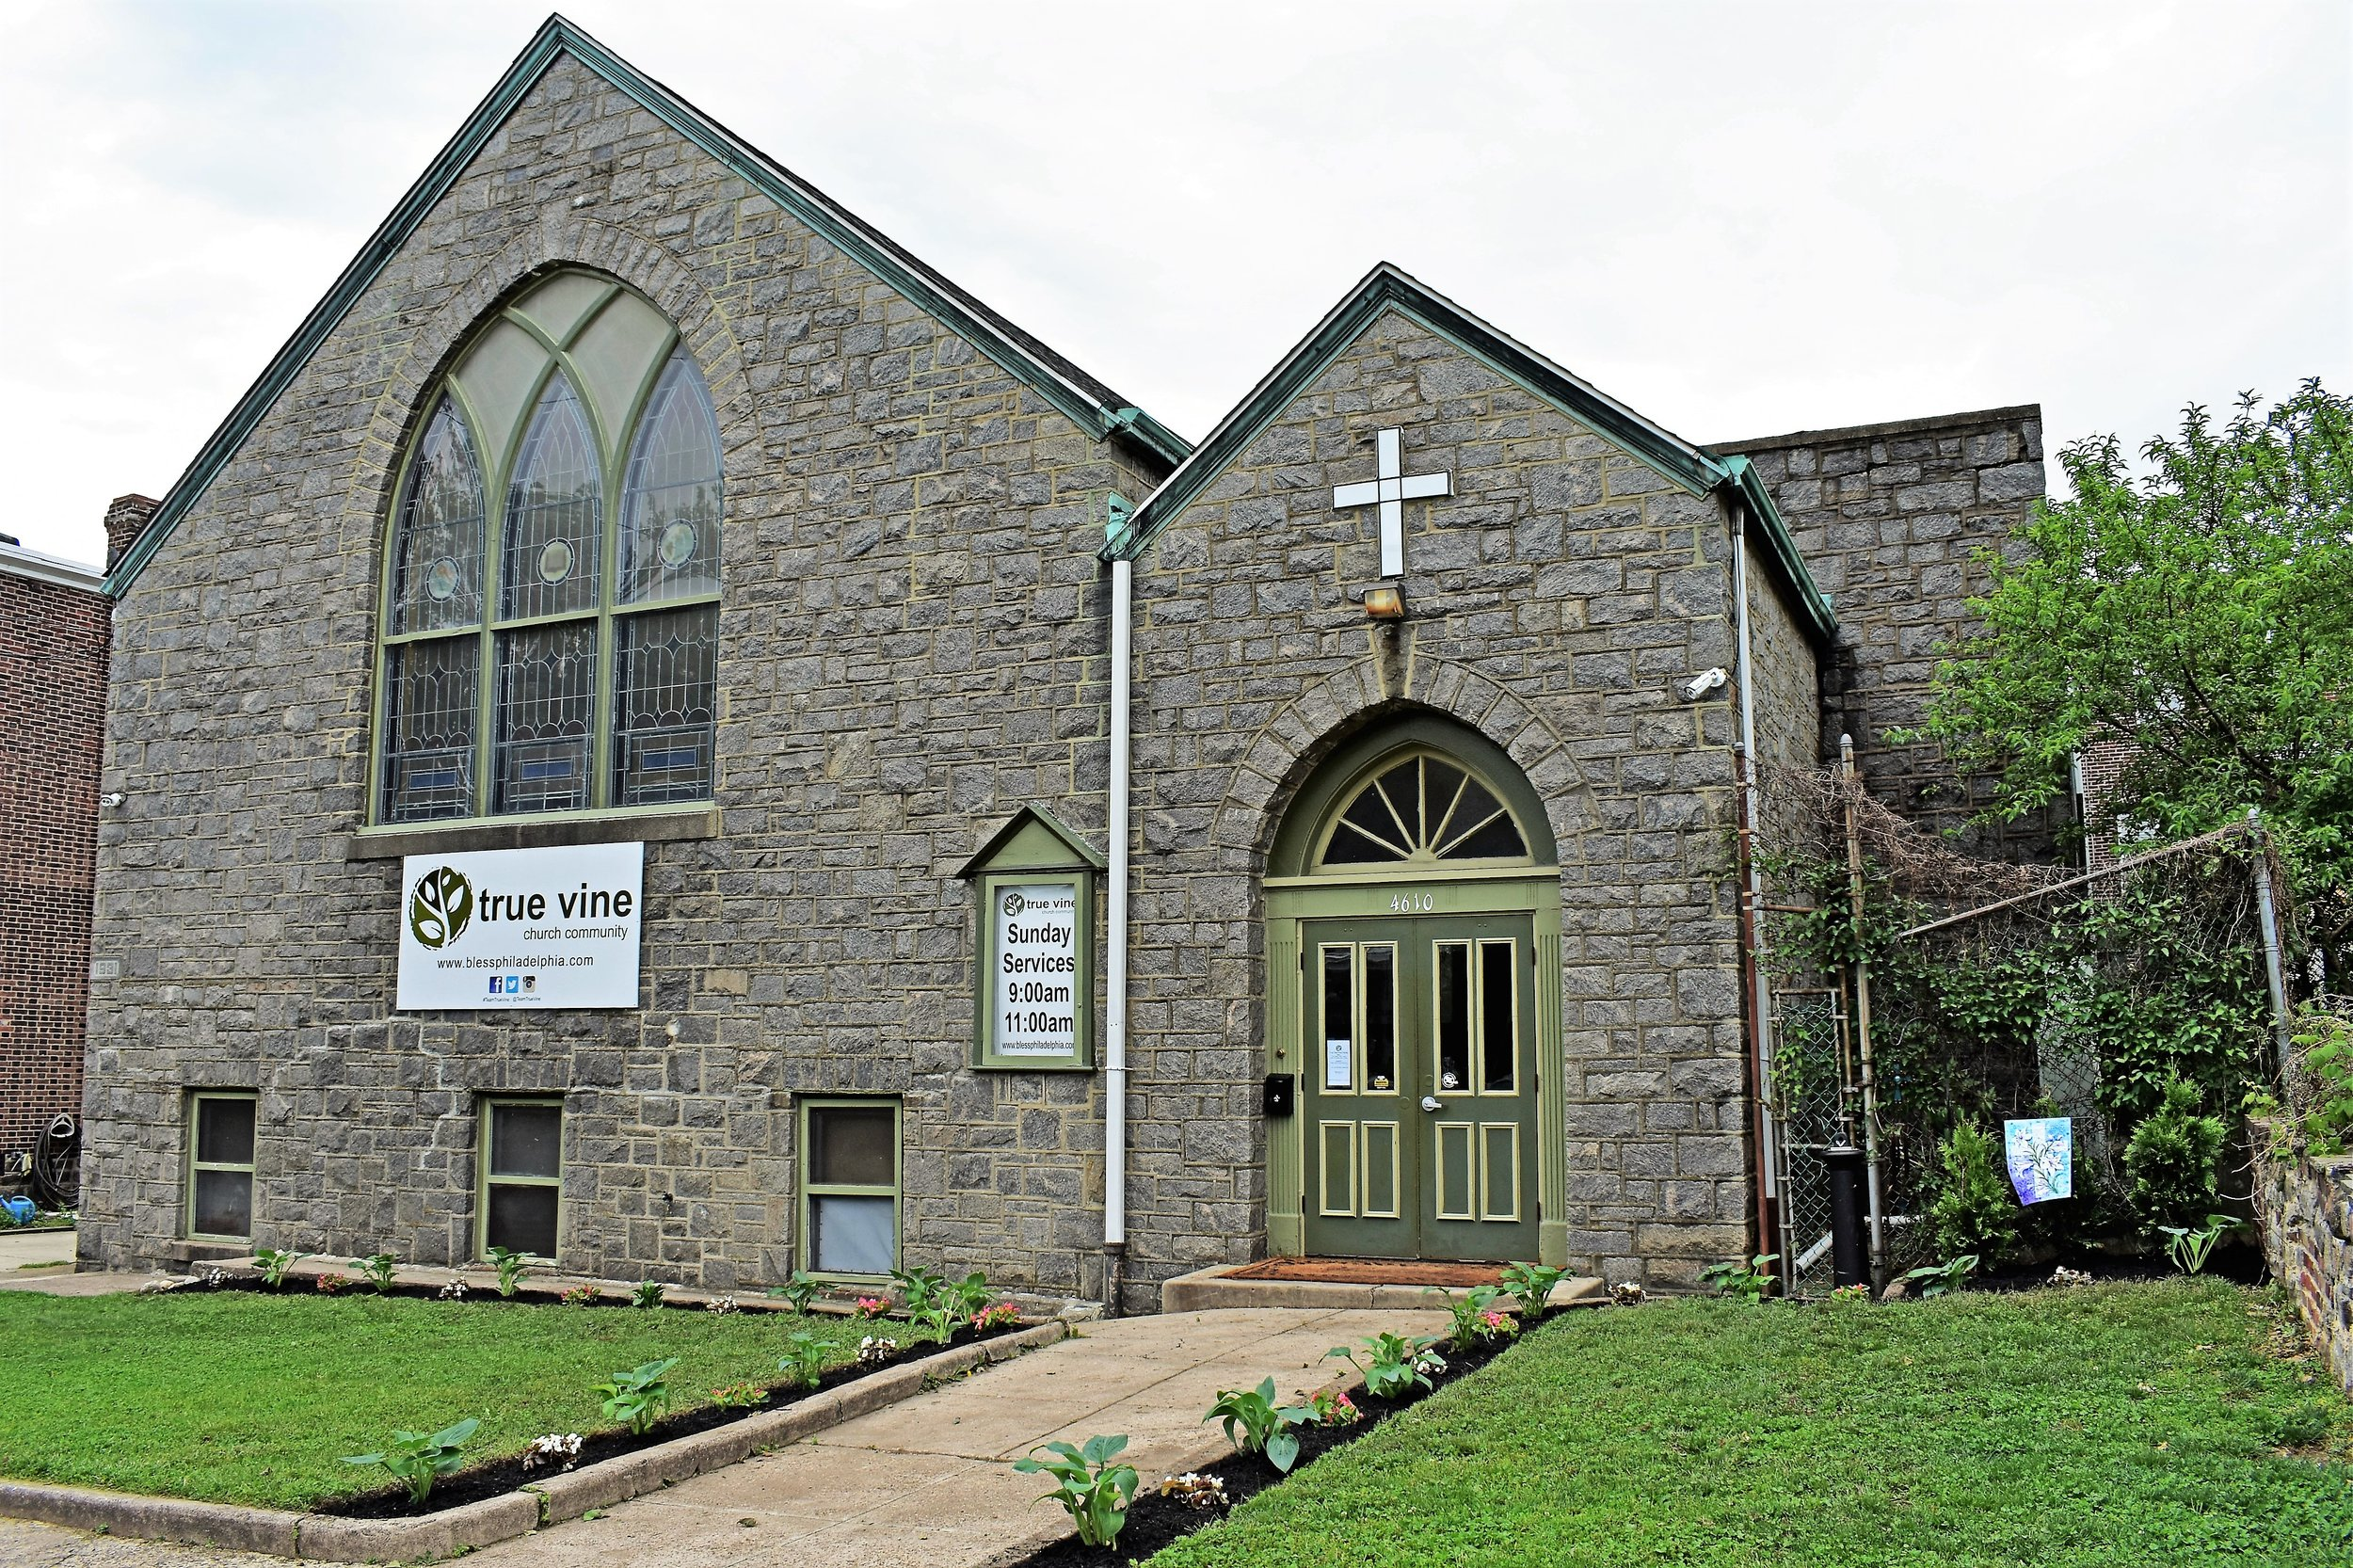 Welcome! - True Vine is a Bible-believing, Jesus-worshipping church located in the Wissinoming section of Northeast Philadelphia. We would love to have you visit some time!You can join us Sunday mornings at 9am or 11am.